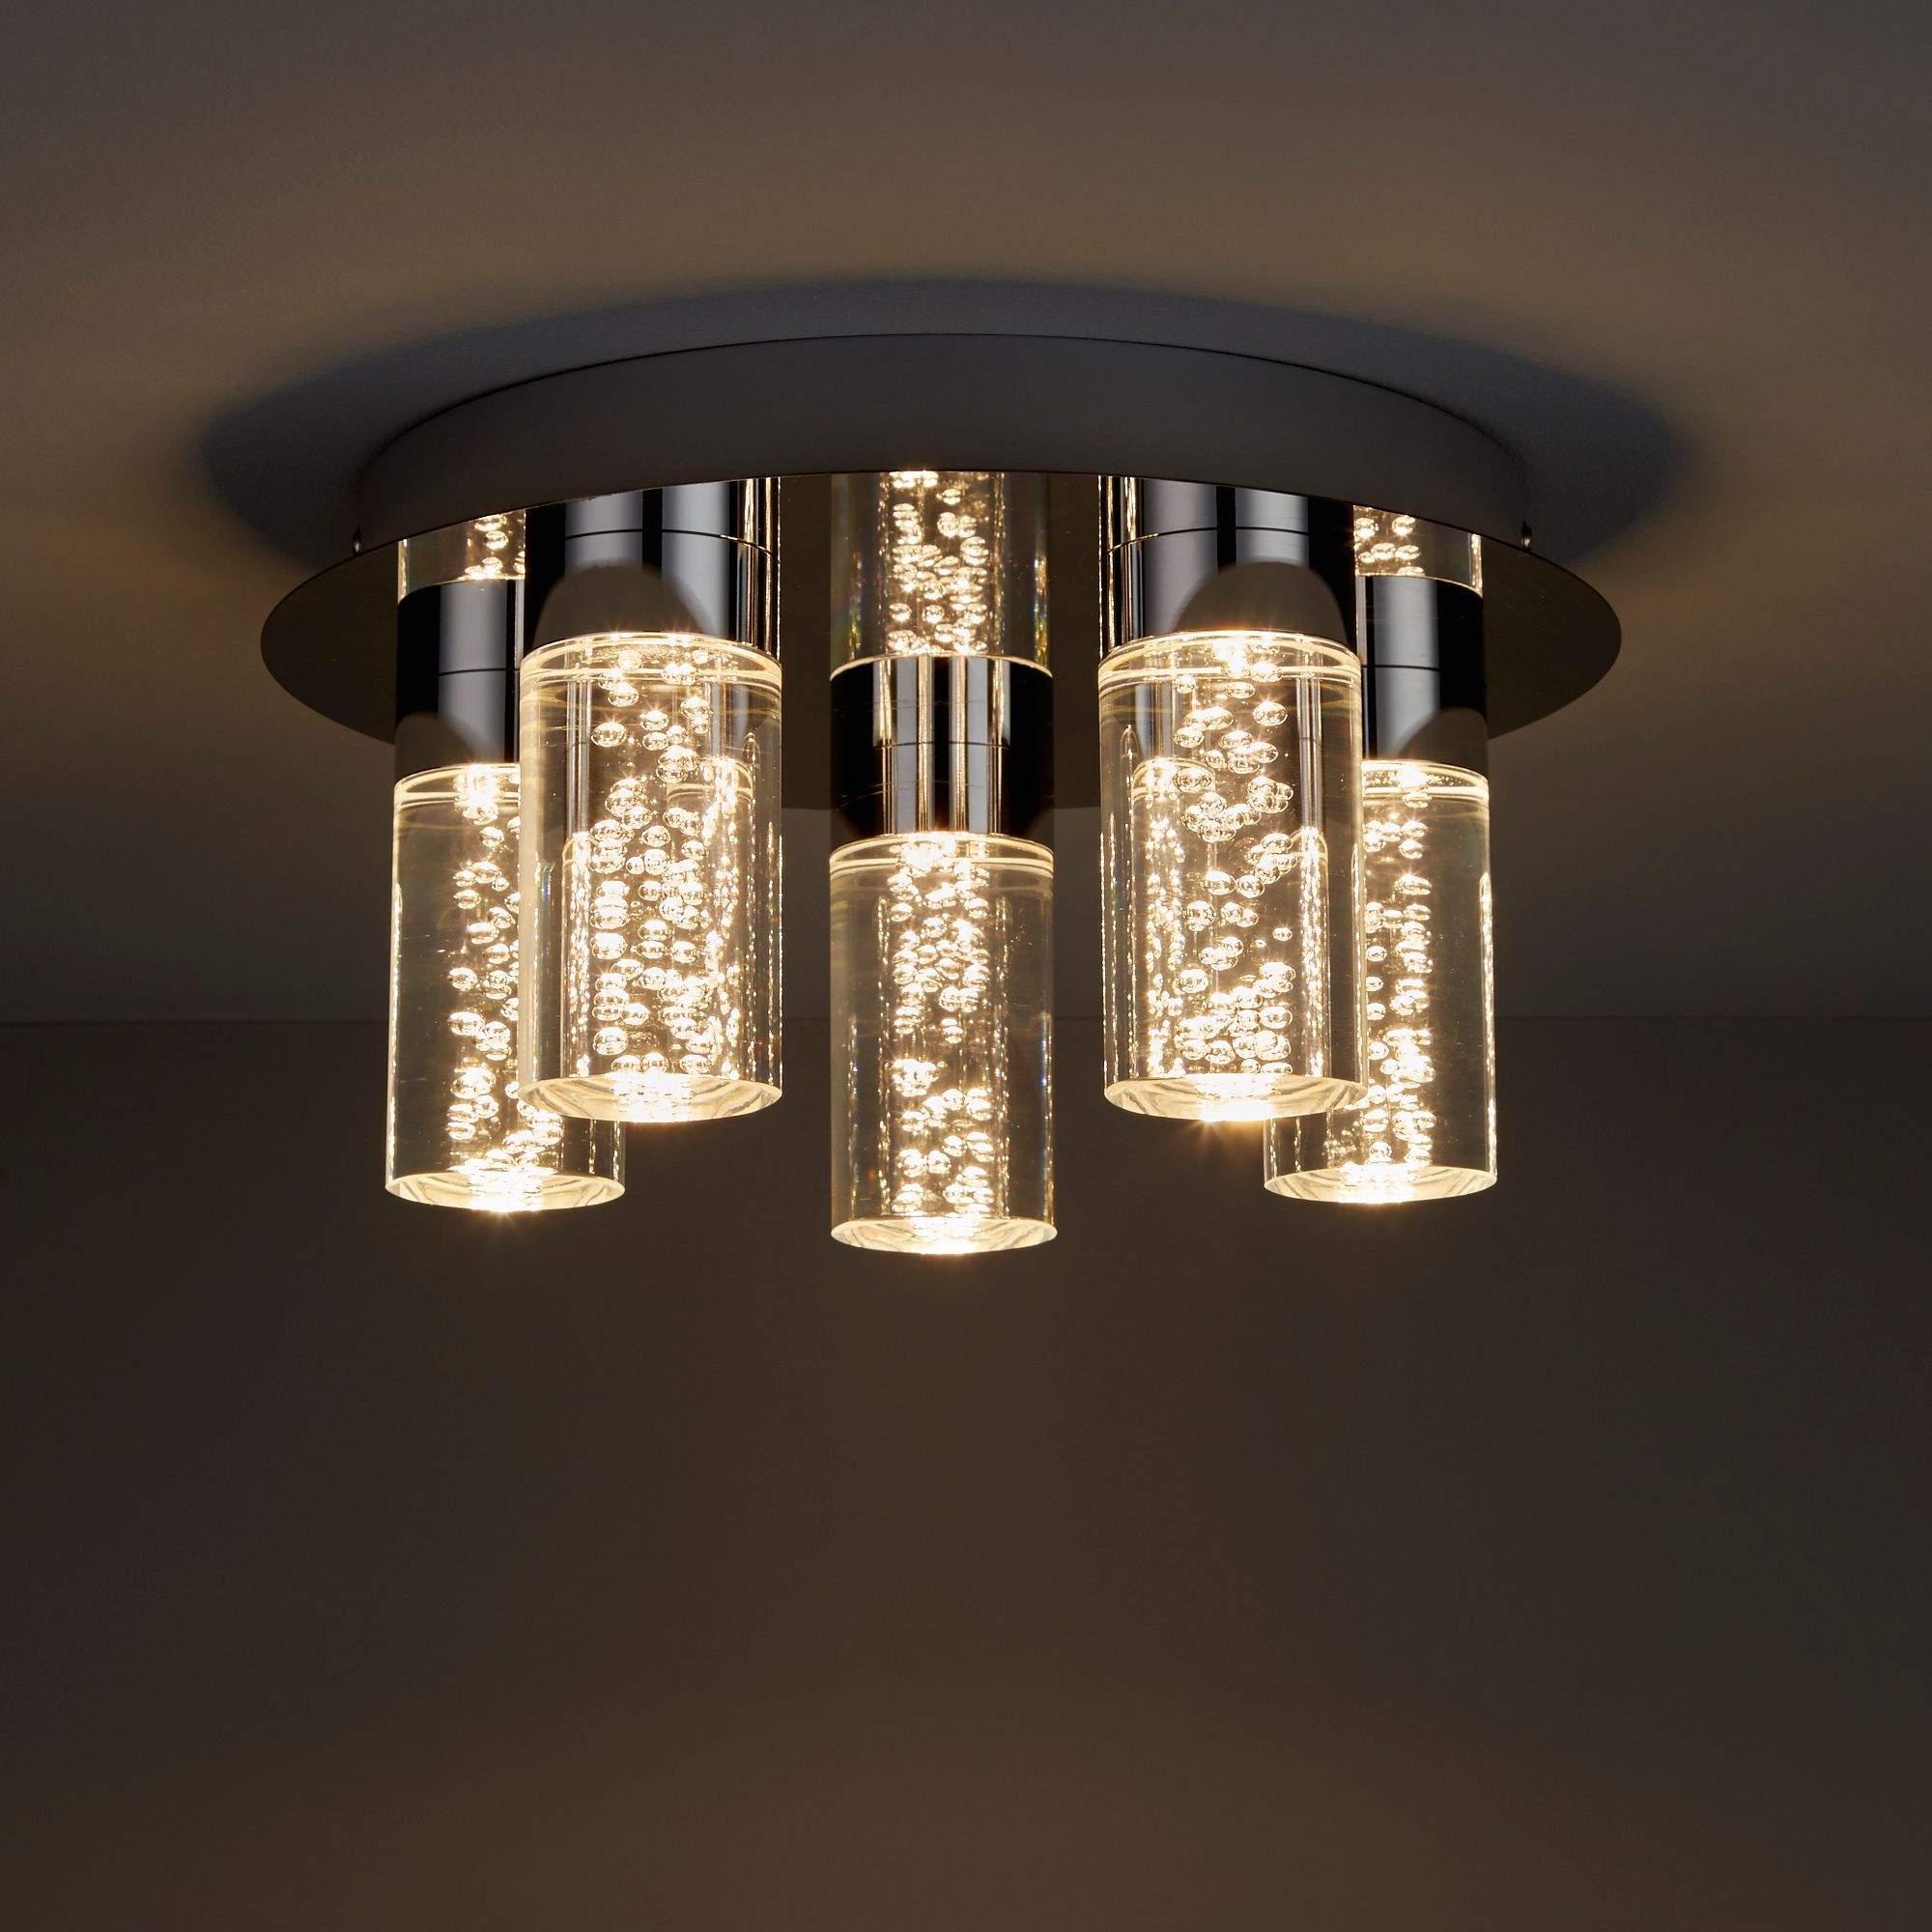 bathroom cieling lights diy at b amp q 10459